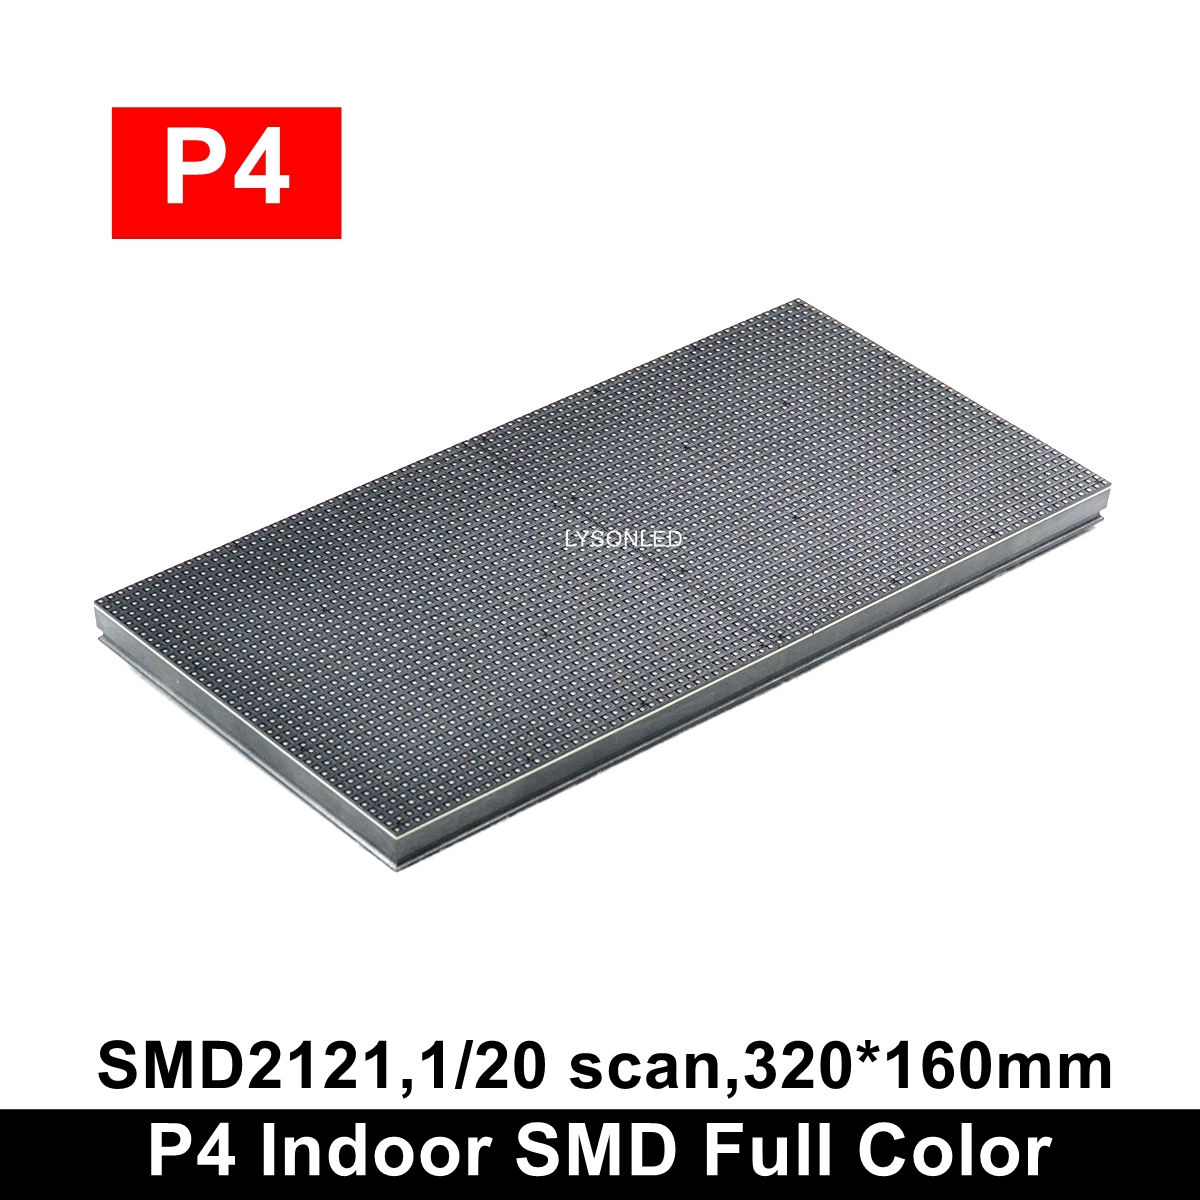 Indoor SMD2121 Full Color P4 P5 LED Module 320x160mm, High Quality Advertising LED Video Wall RGB LED Display Panel 32x16cm